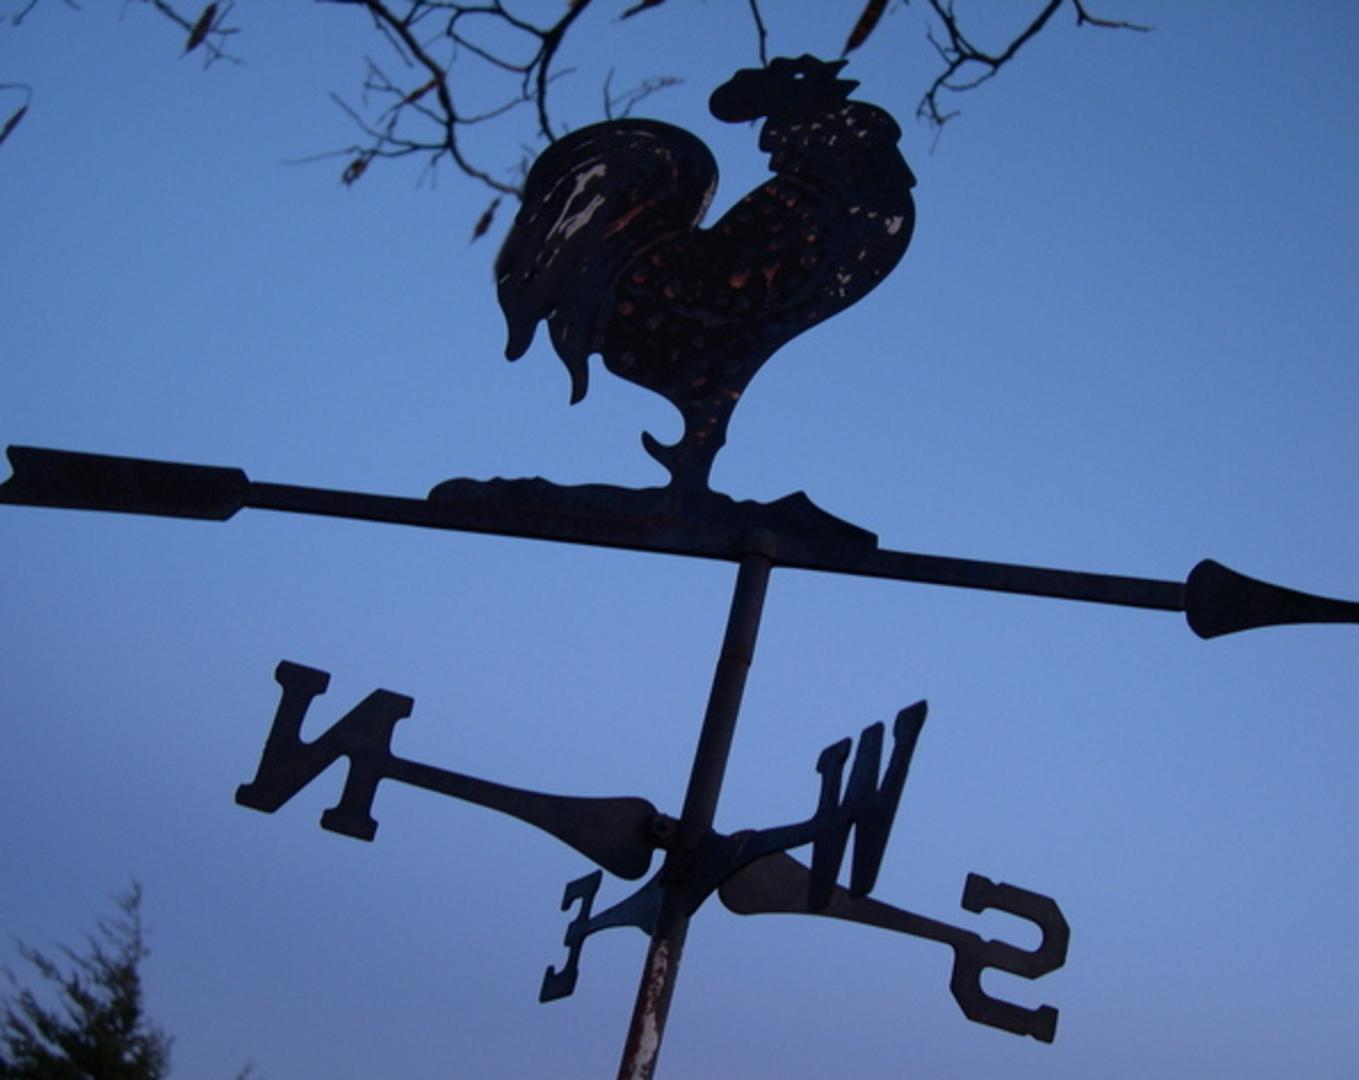 rooster-shaped weathervane in lavender dawn